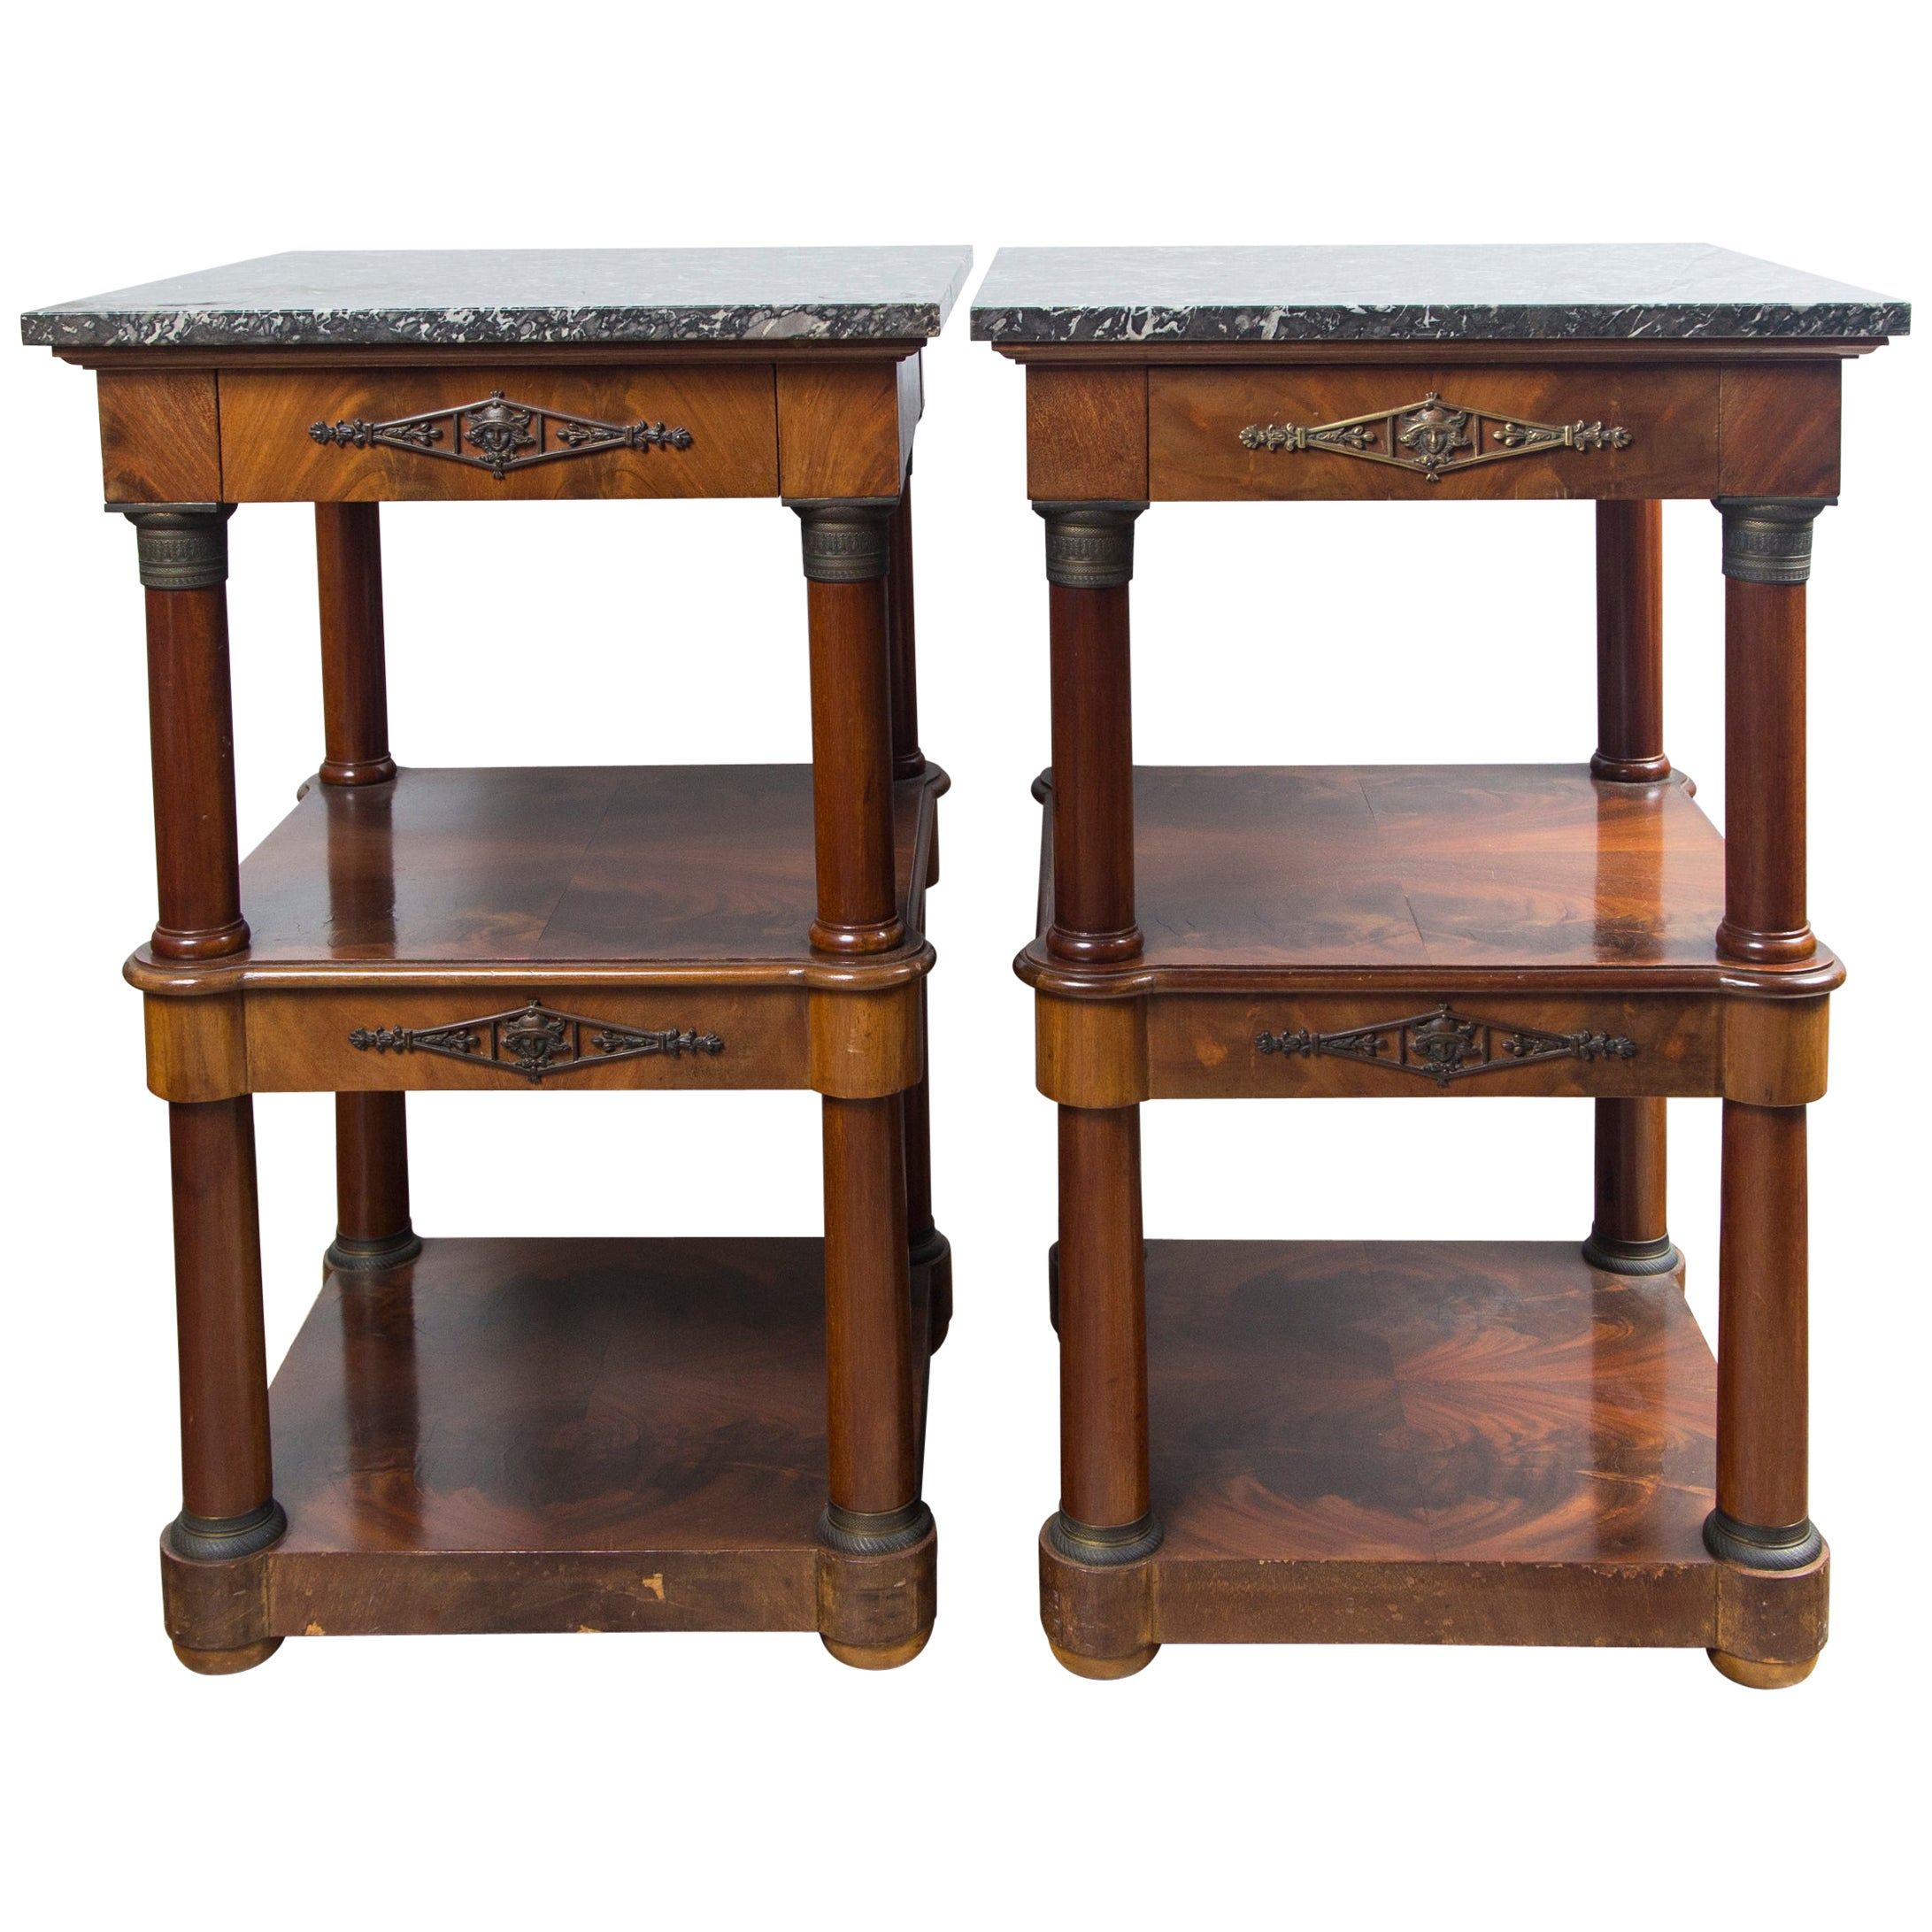 Pair of Marble Topped Empire Style End Tables